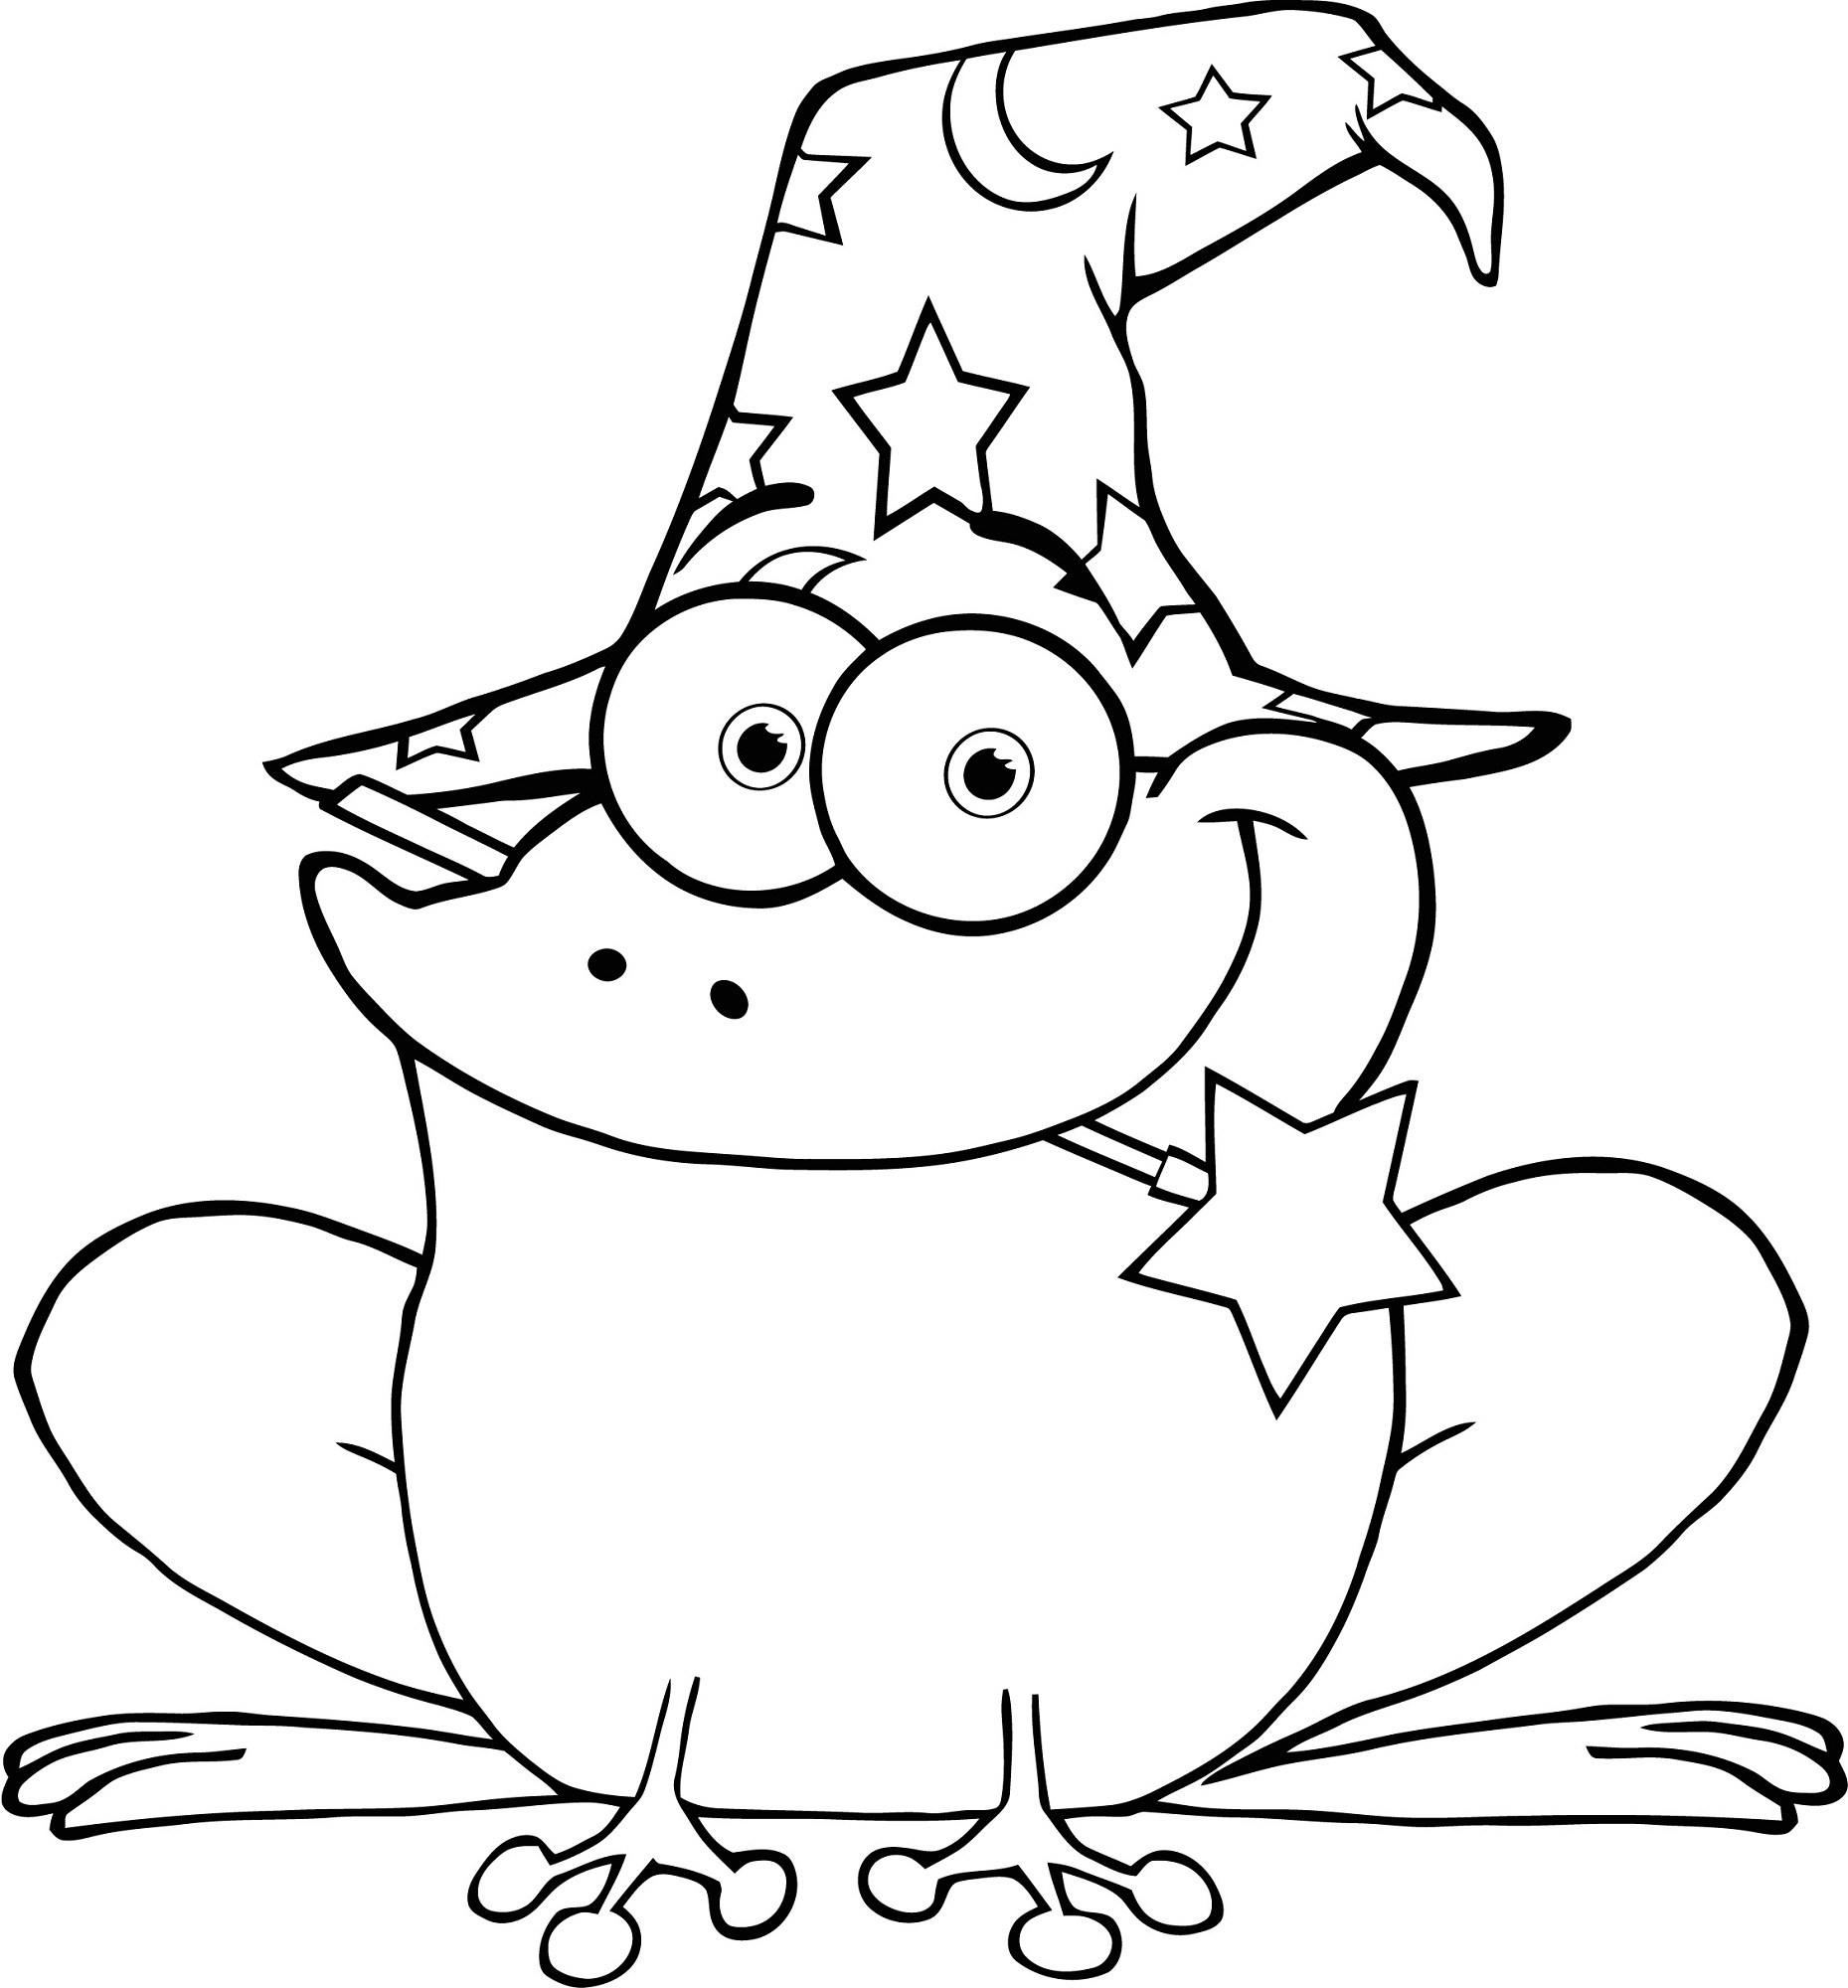 frog to color frogs coloring pages to download and print for free to color frog